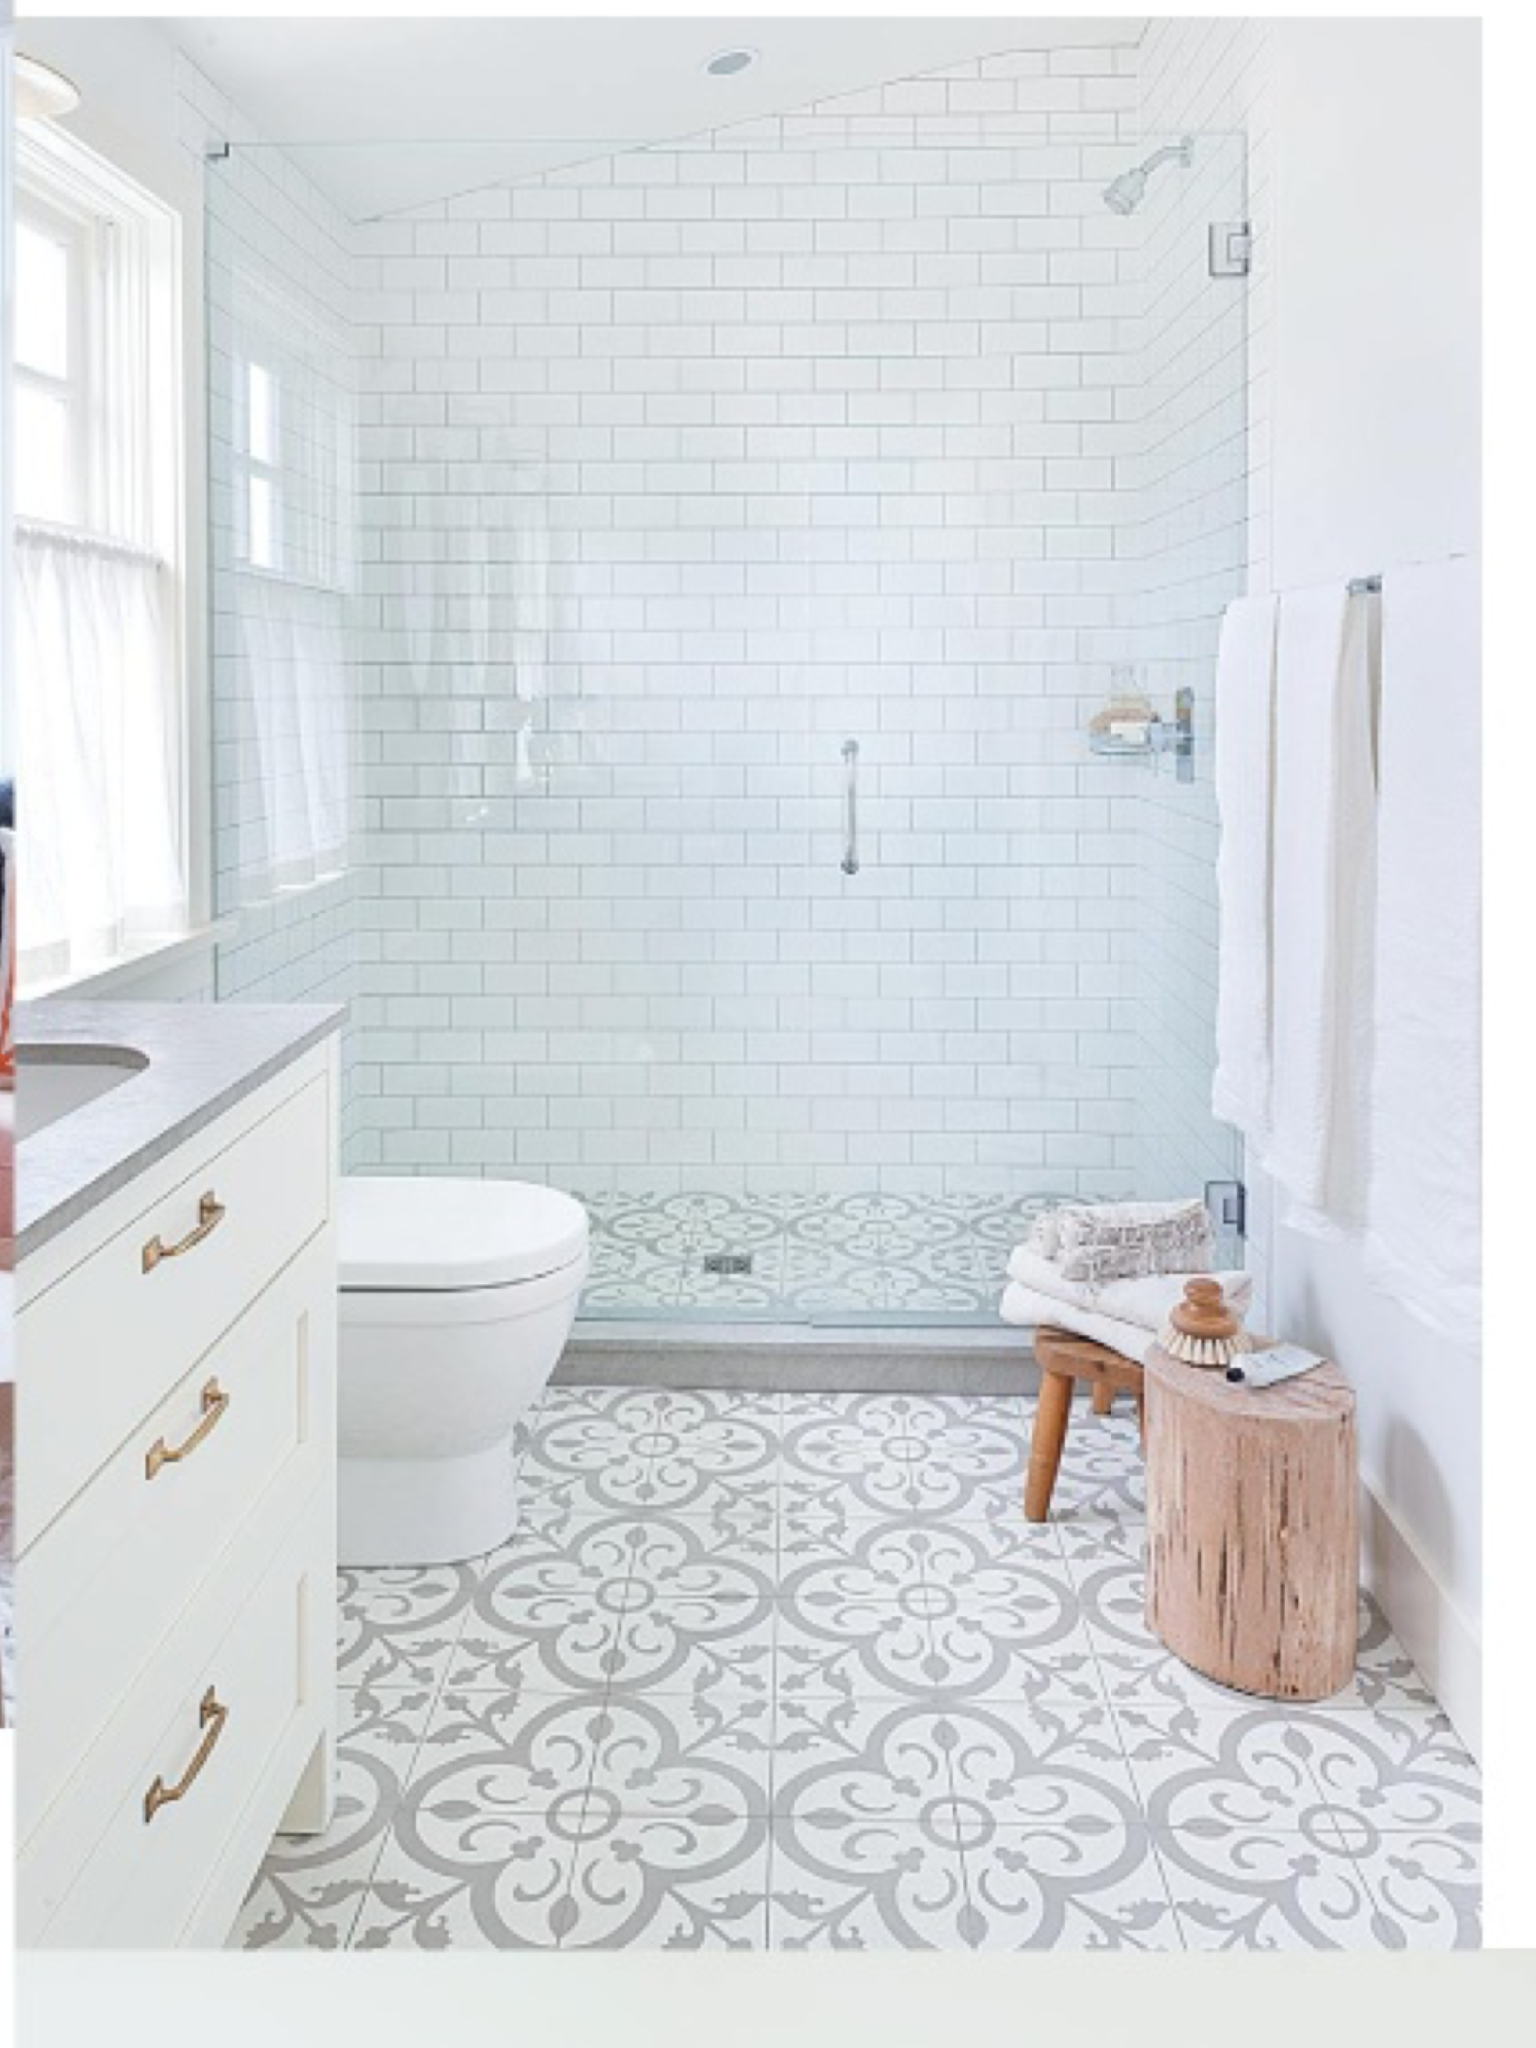 15+ Luxury Bathroom Tile Patterns Ideas | Walkways, Layouts and Change